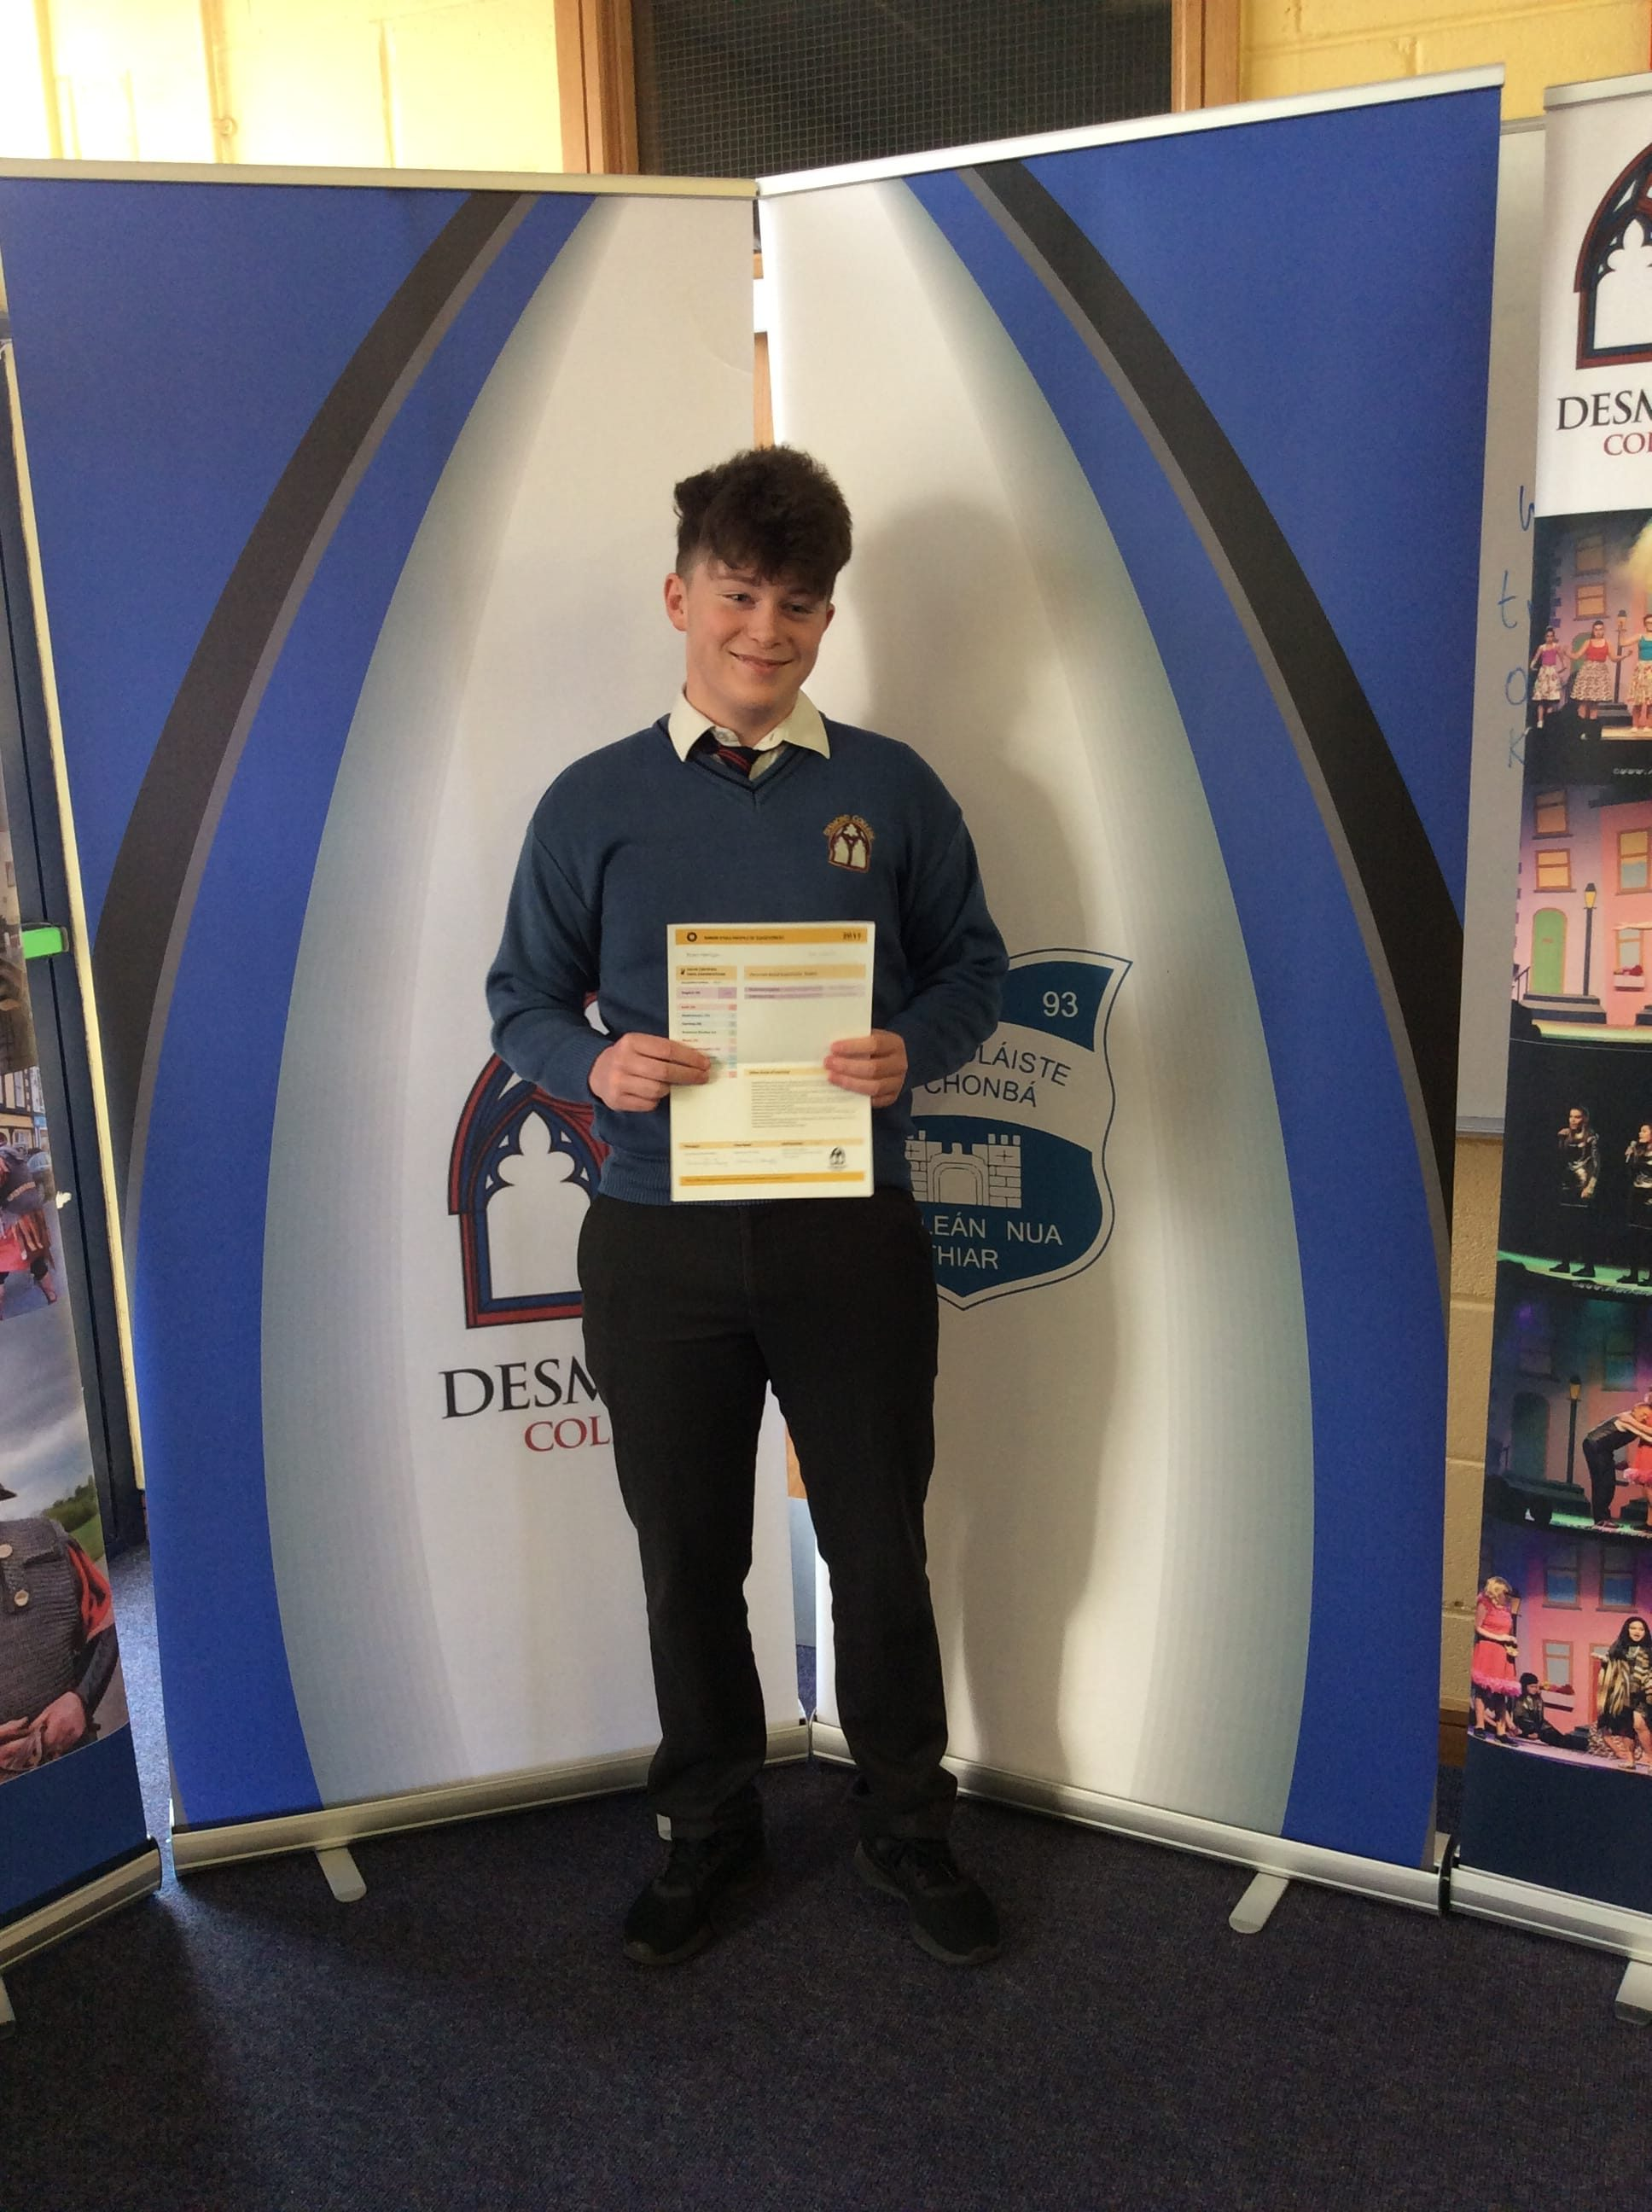 26th February 2018: Junior Cycle Profile of Achievement Presentations